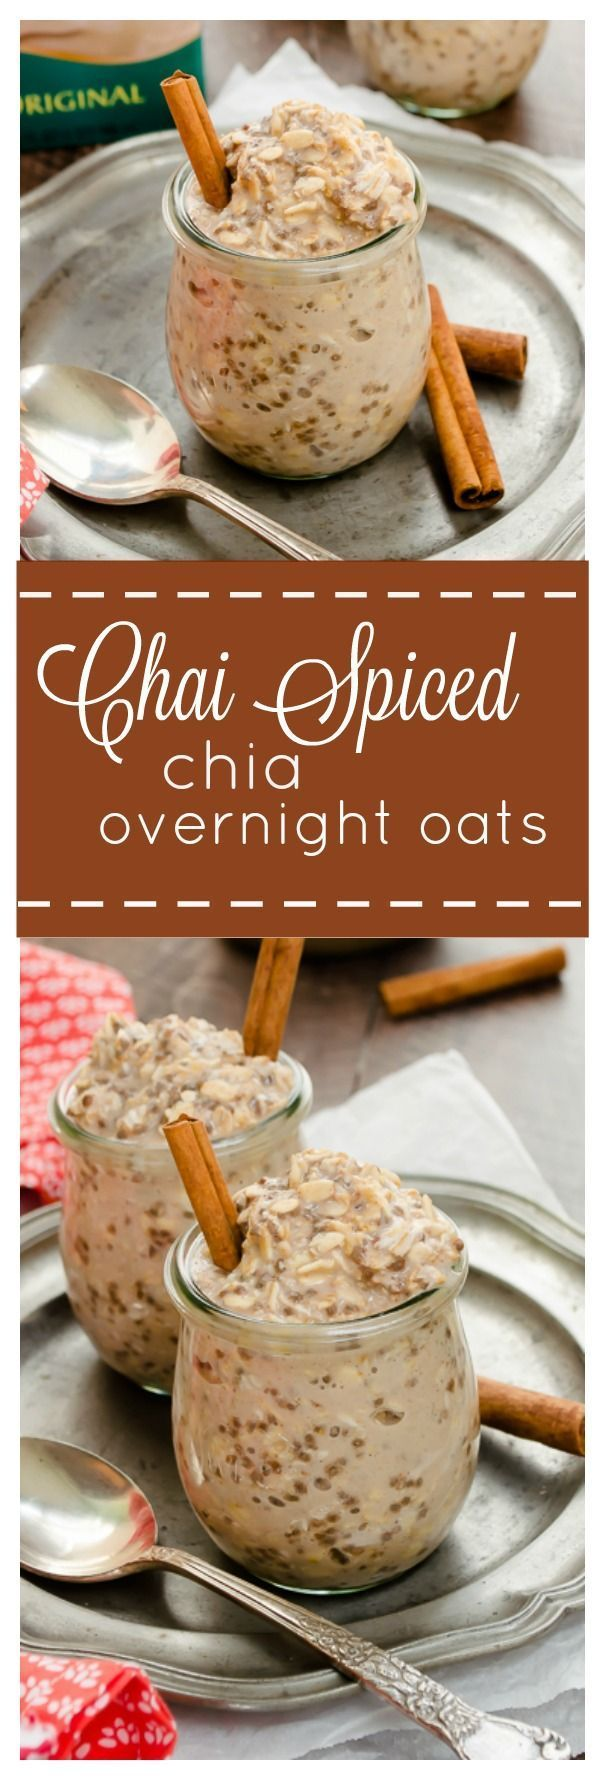 Chai Spiced Chia Overnight Oats are creamy overnight oats with warm chai spices. They're gluten-free and vegan, and are the perfect grab-n-go breakfast! @FlavortheMoment Spiced Chia Overnight Oats are creamy overnight oats with warm chai spices. They're gluten-free and vegan, and are the perfect grab-n-go breakfast! @FlavortheMoment